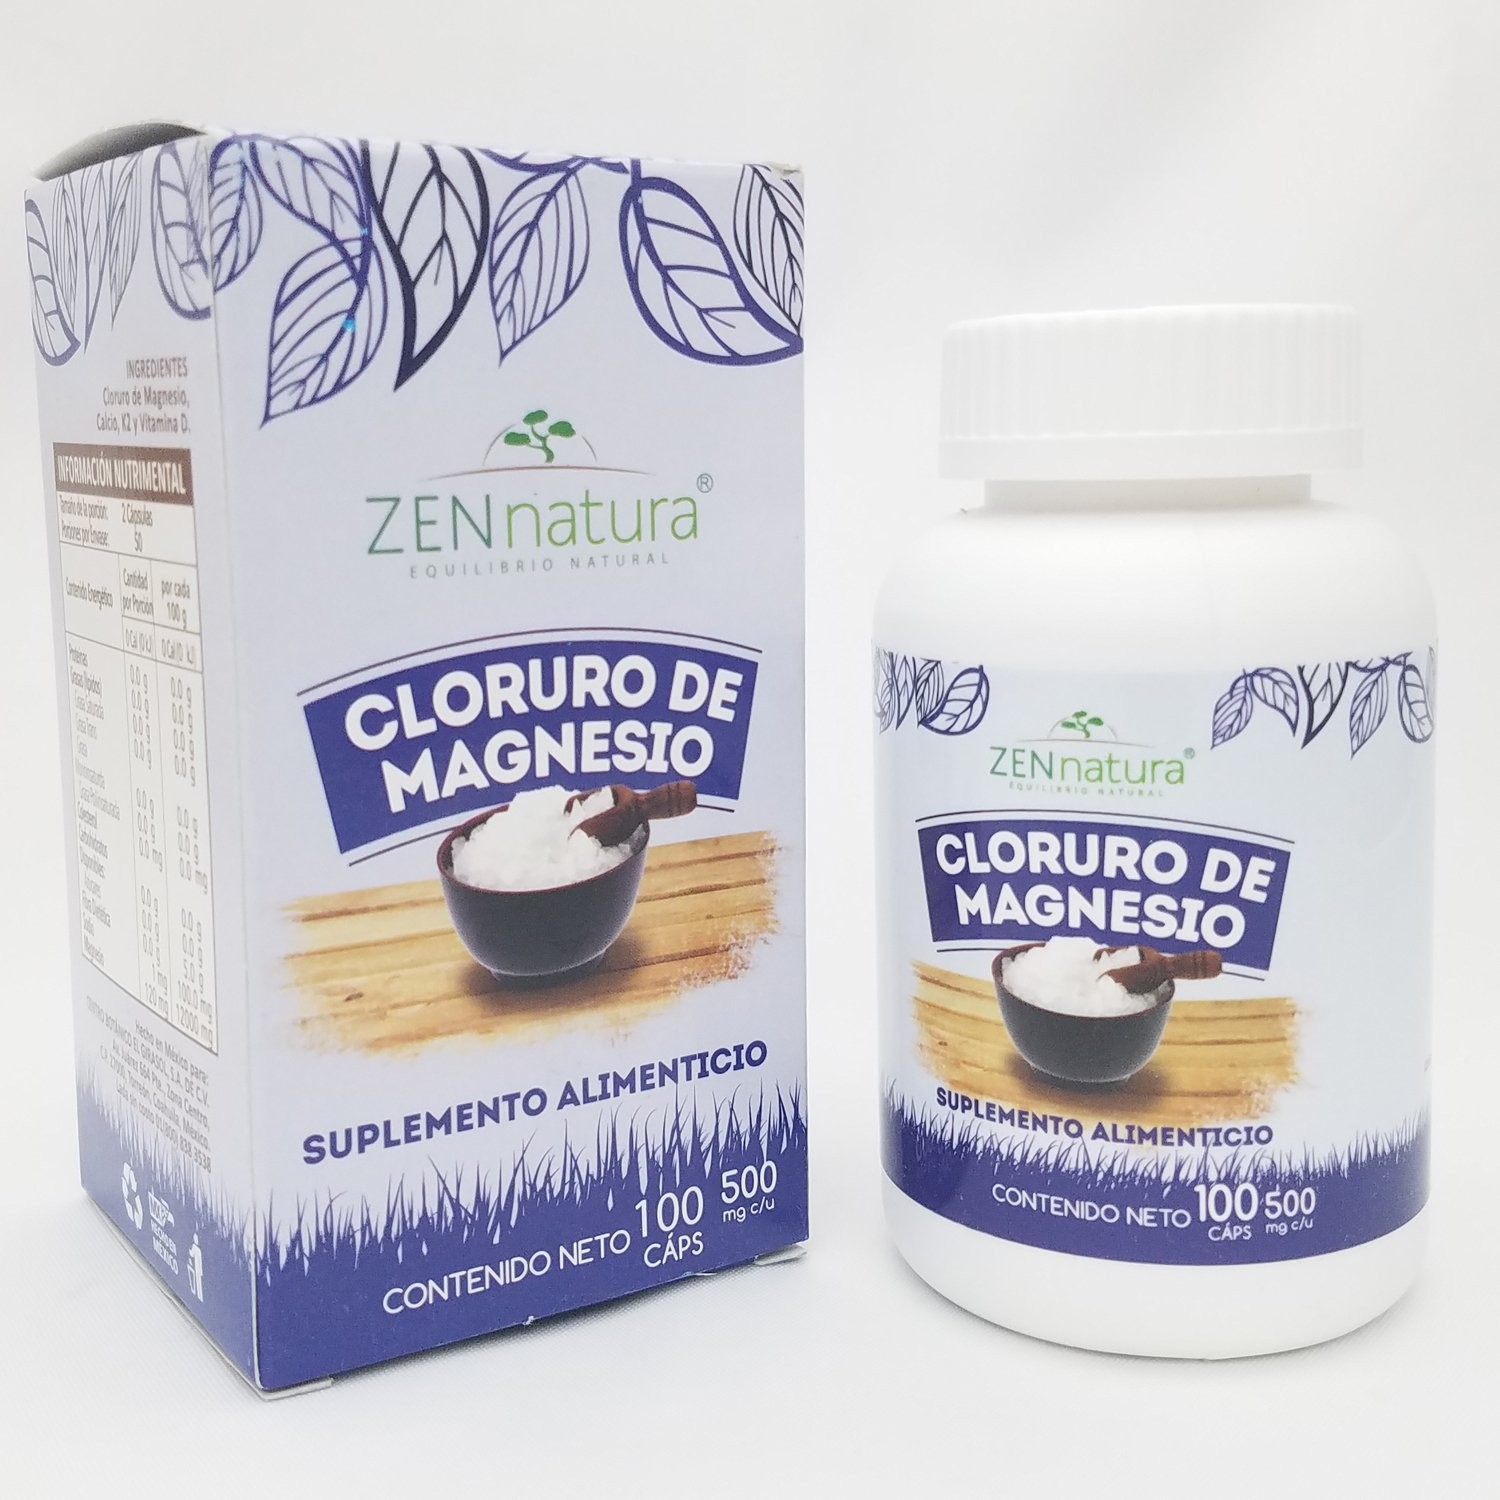 Amazon.com: Zen Natura Cloruro de Magnesio Capsulas, Magnesium Chloride caps, Bottle of 100 caps of 500mgs.: Health & Personal Care